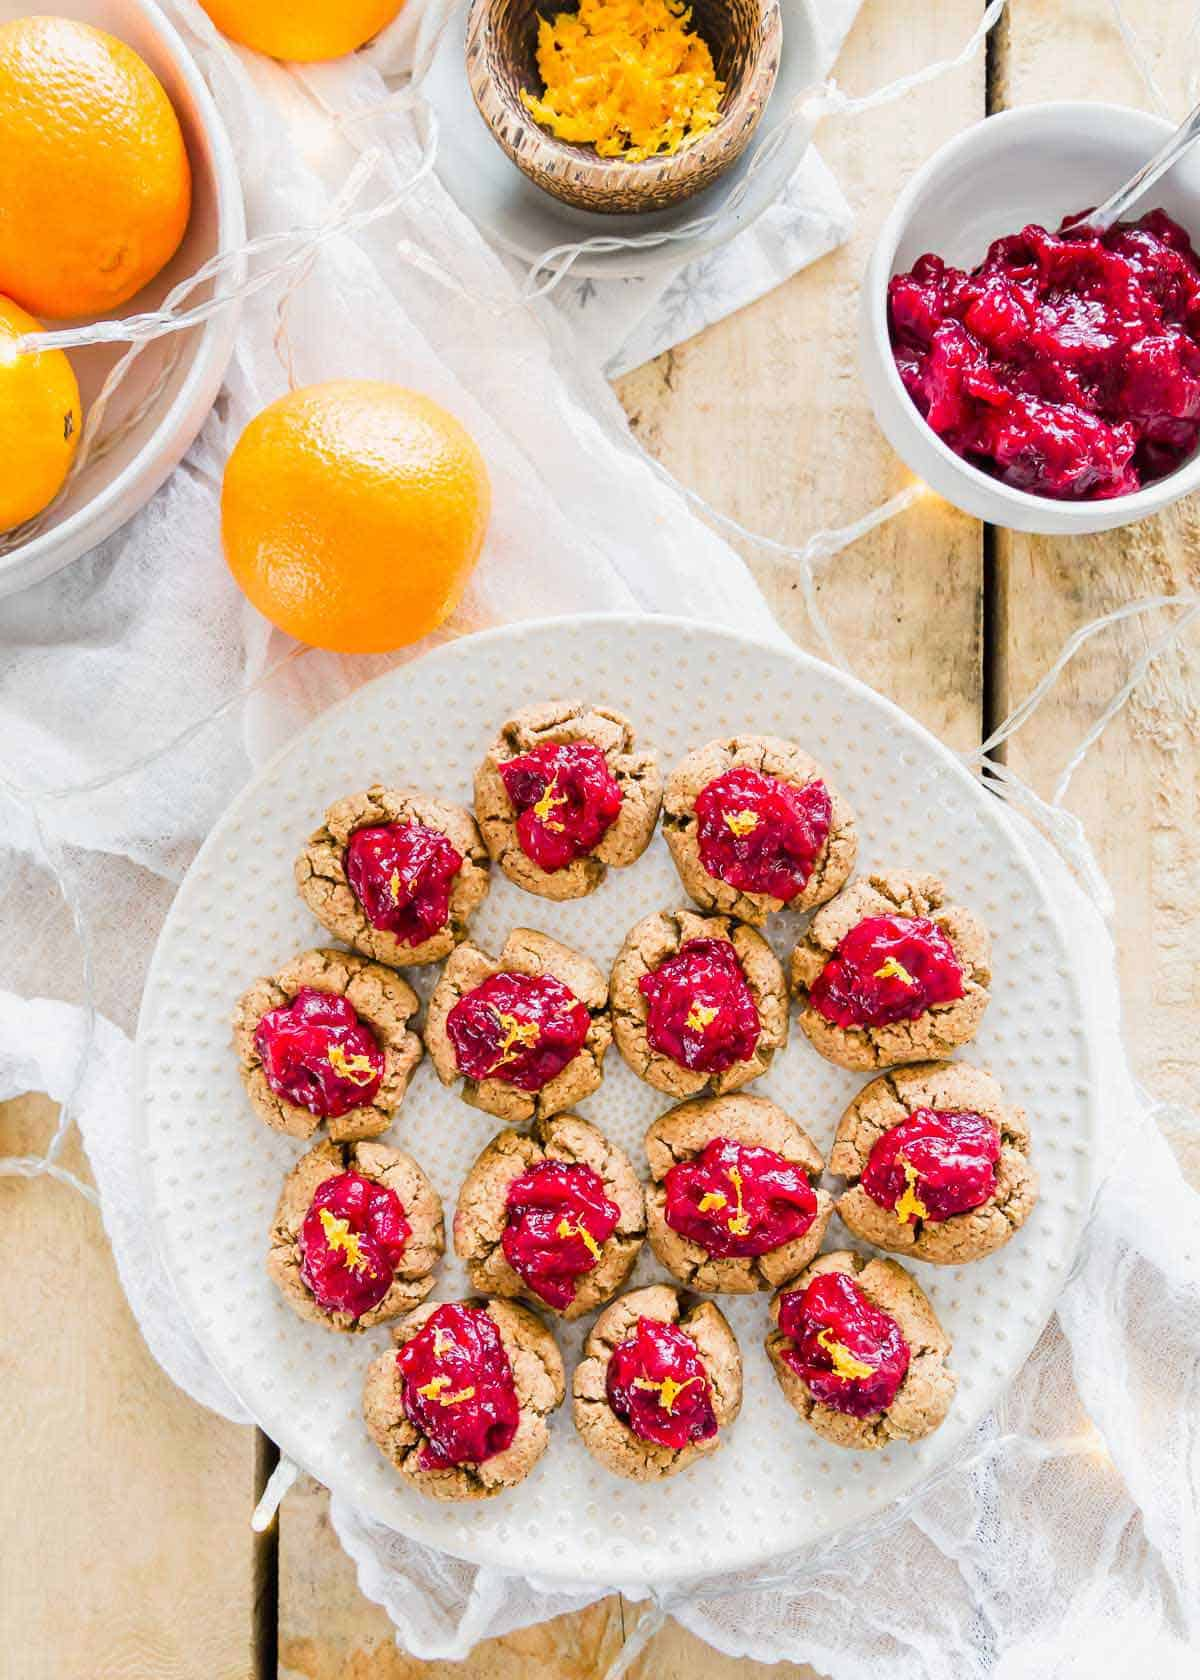 These easy thumbprint cookies are made using almond pulp from homemade almond milk so nothing goes to waste!